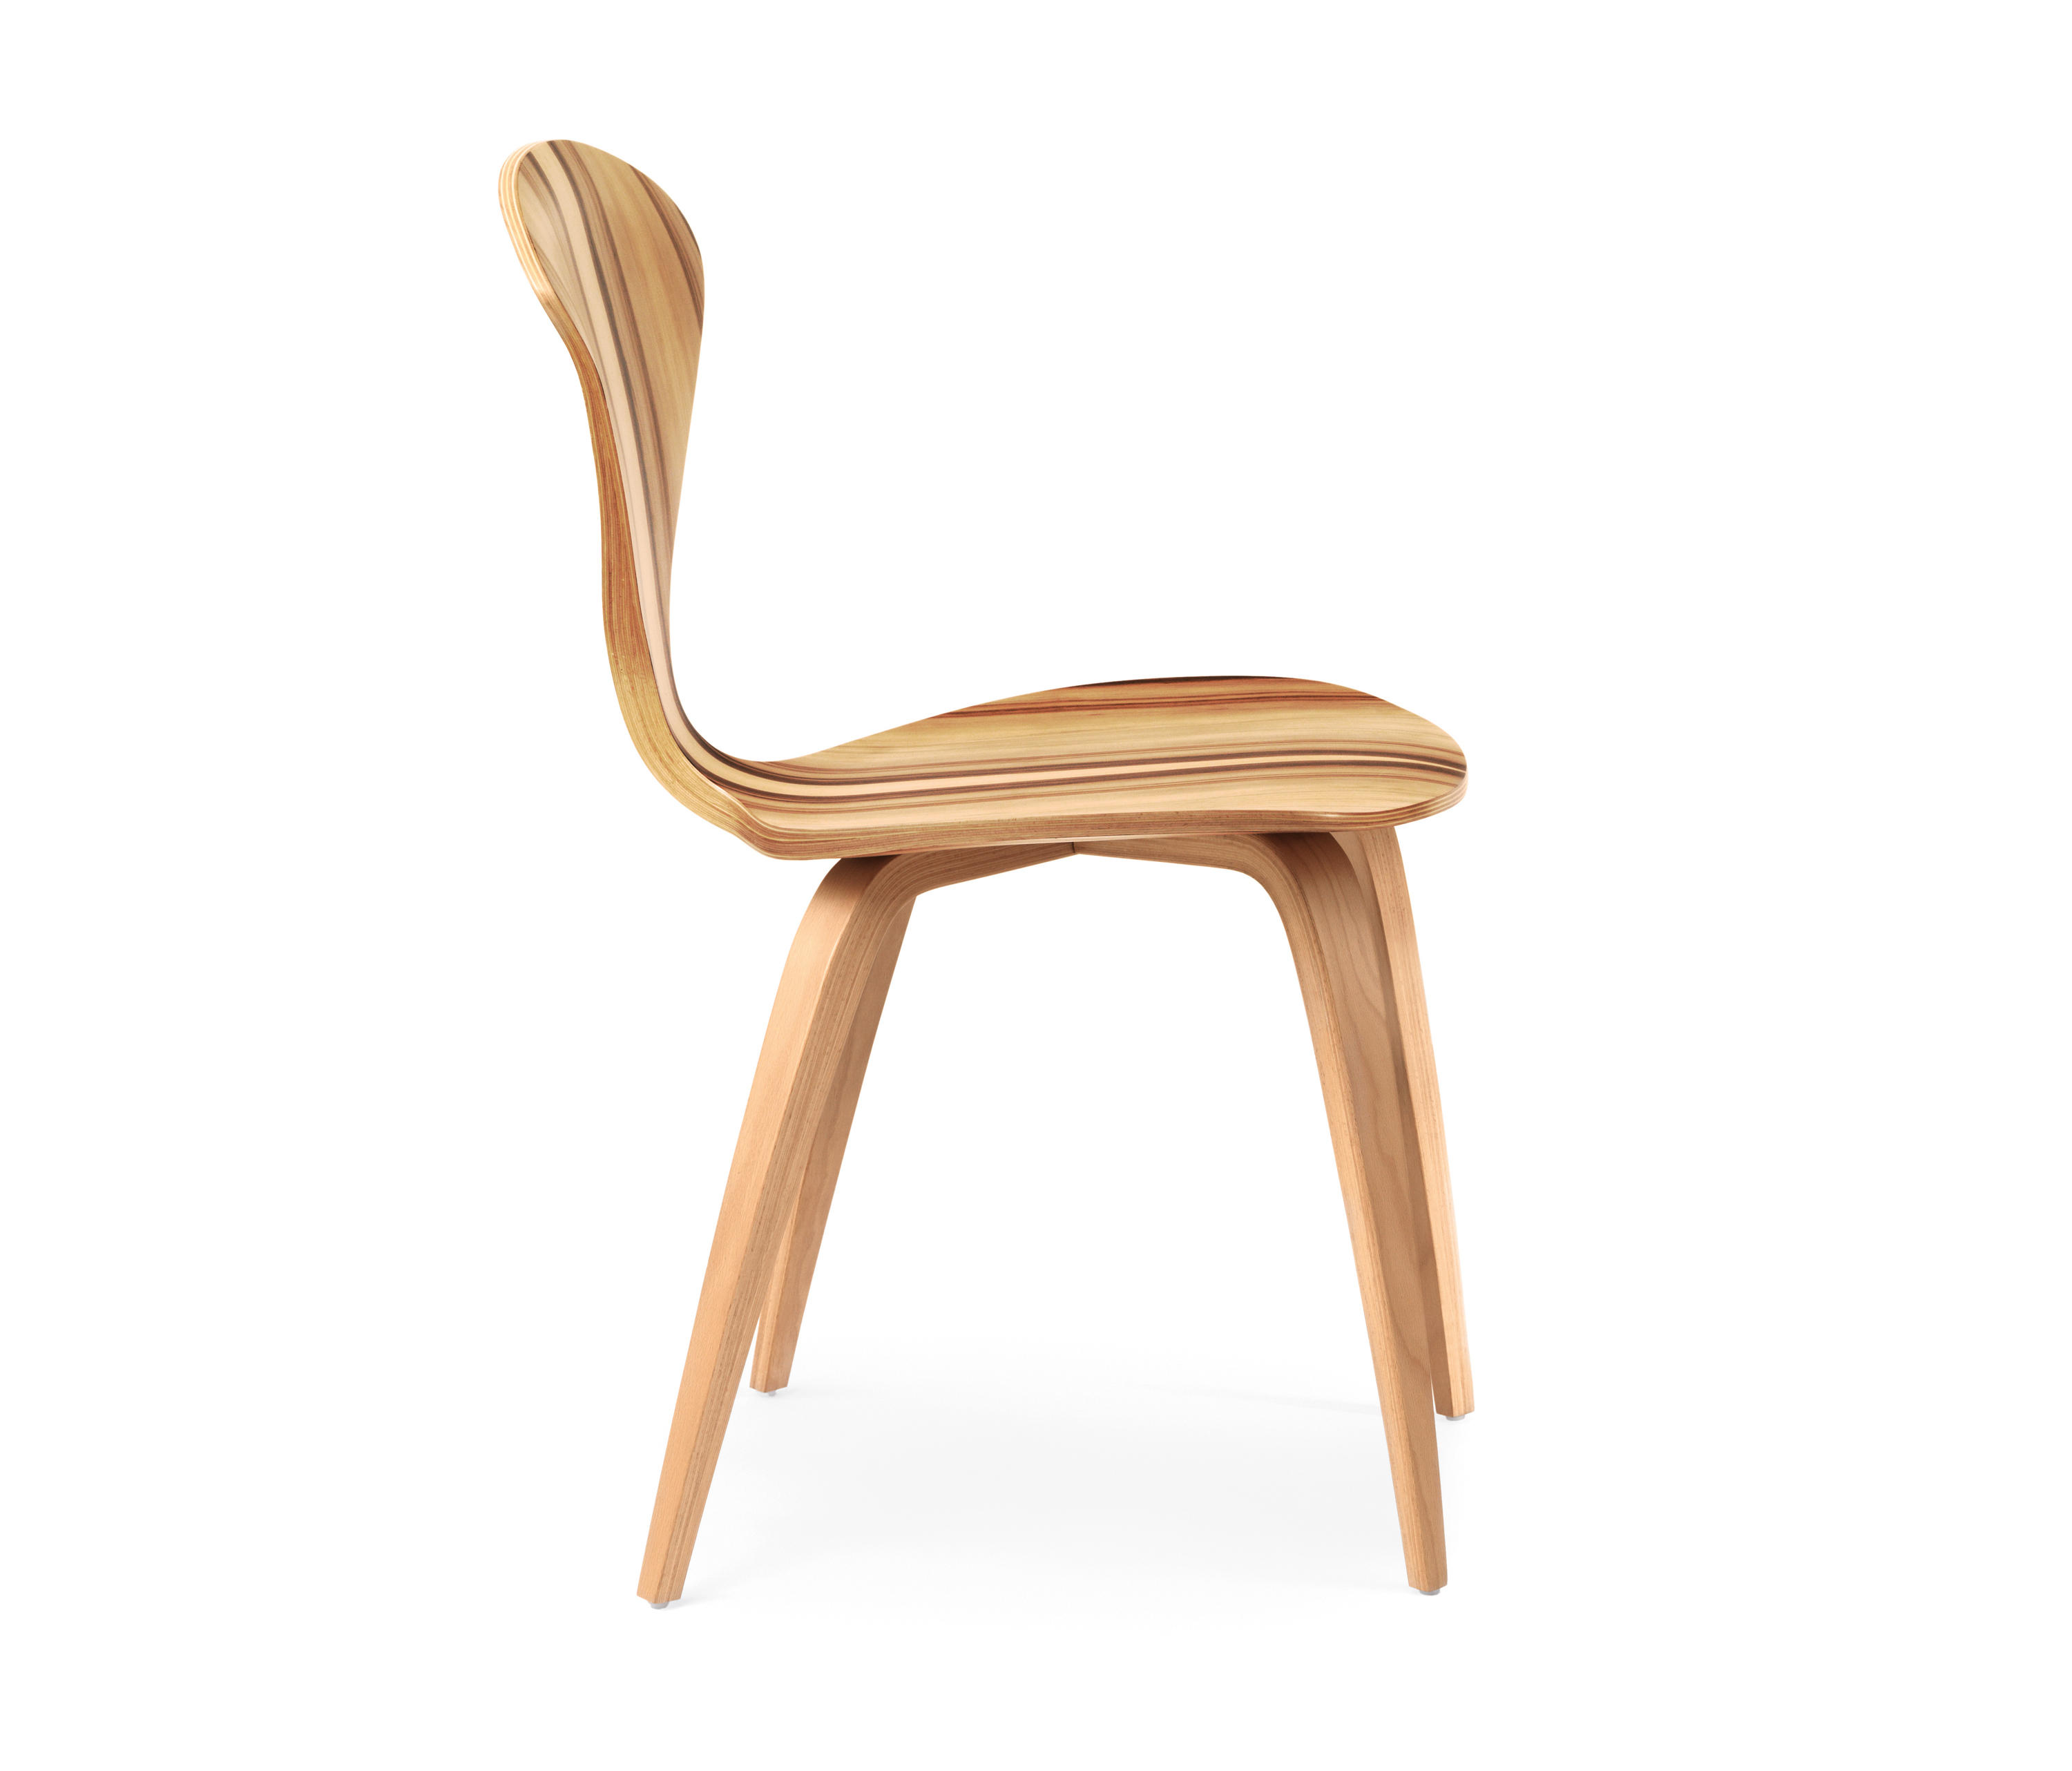 Cherner Side Chair By Cherner | Chairs ...